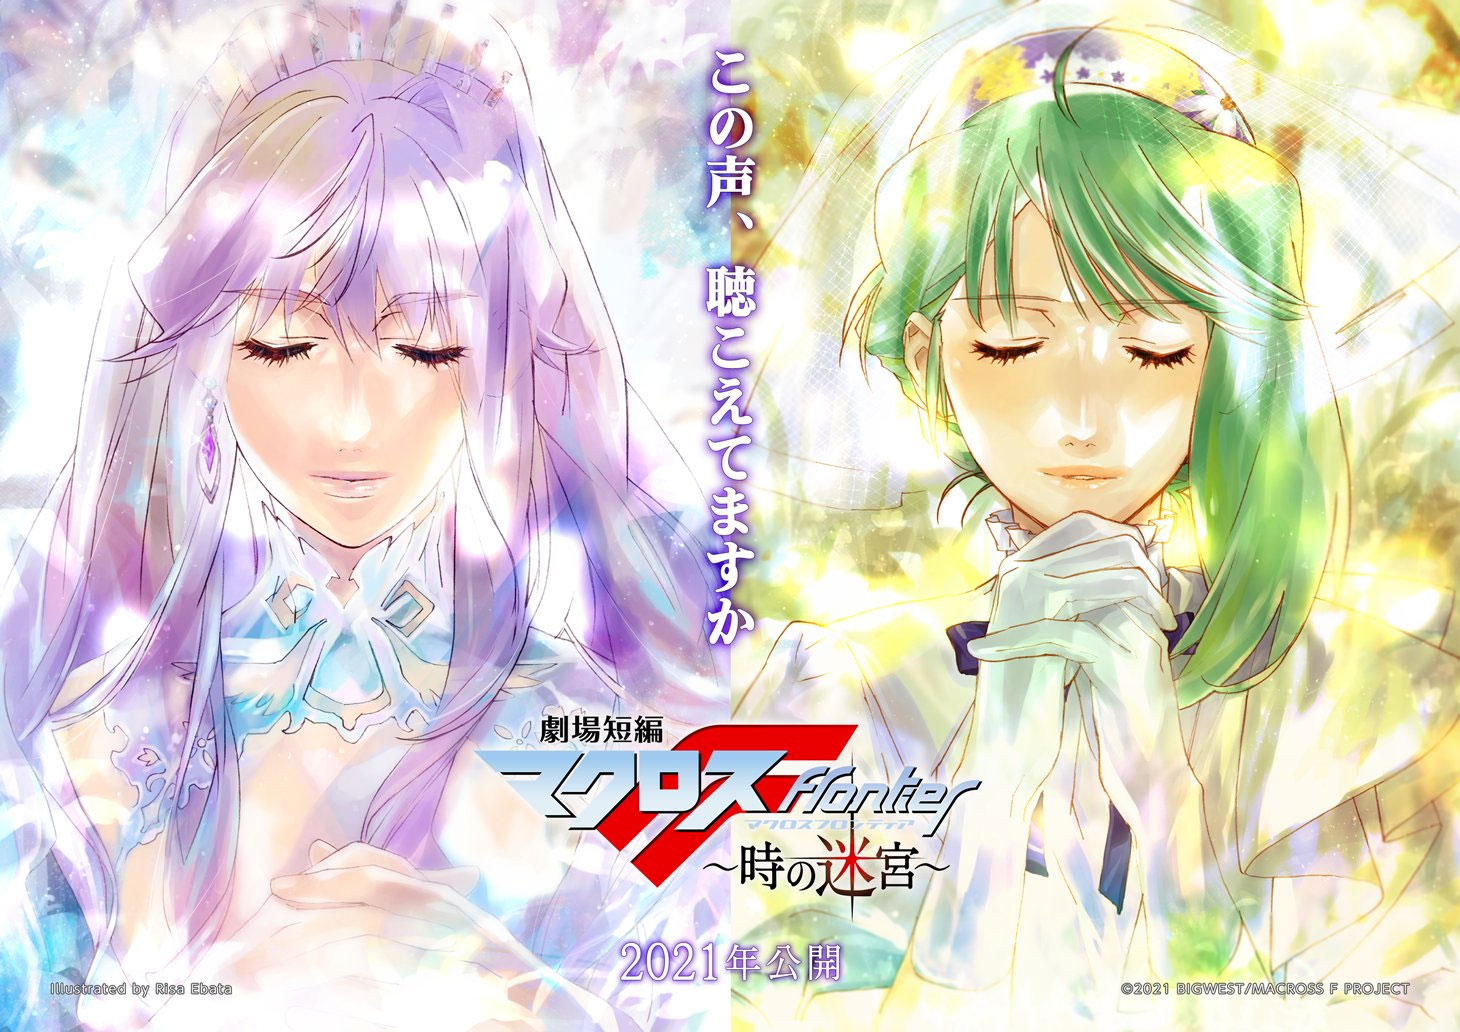 Macross Frontier the Movie: Labyrinth of Time